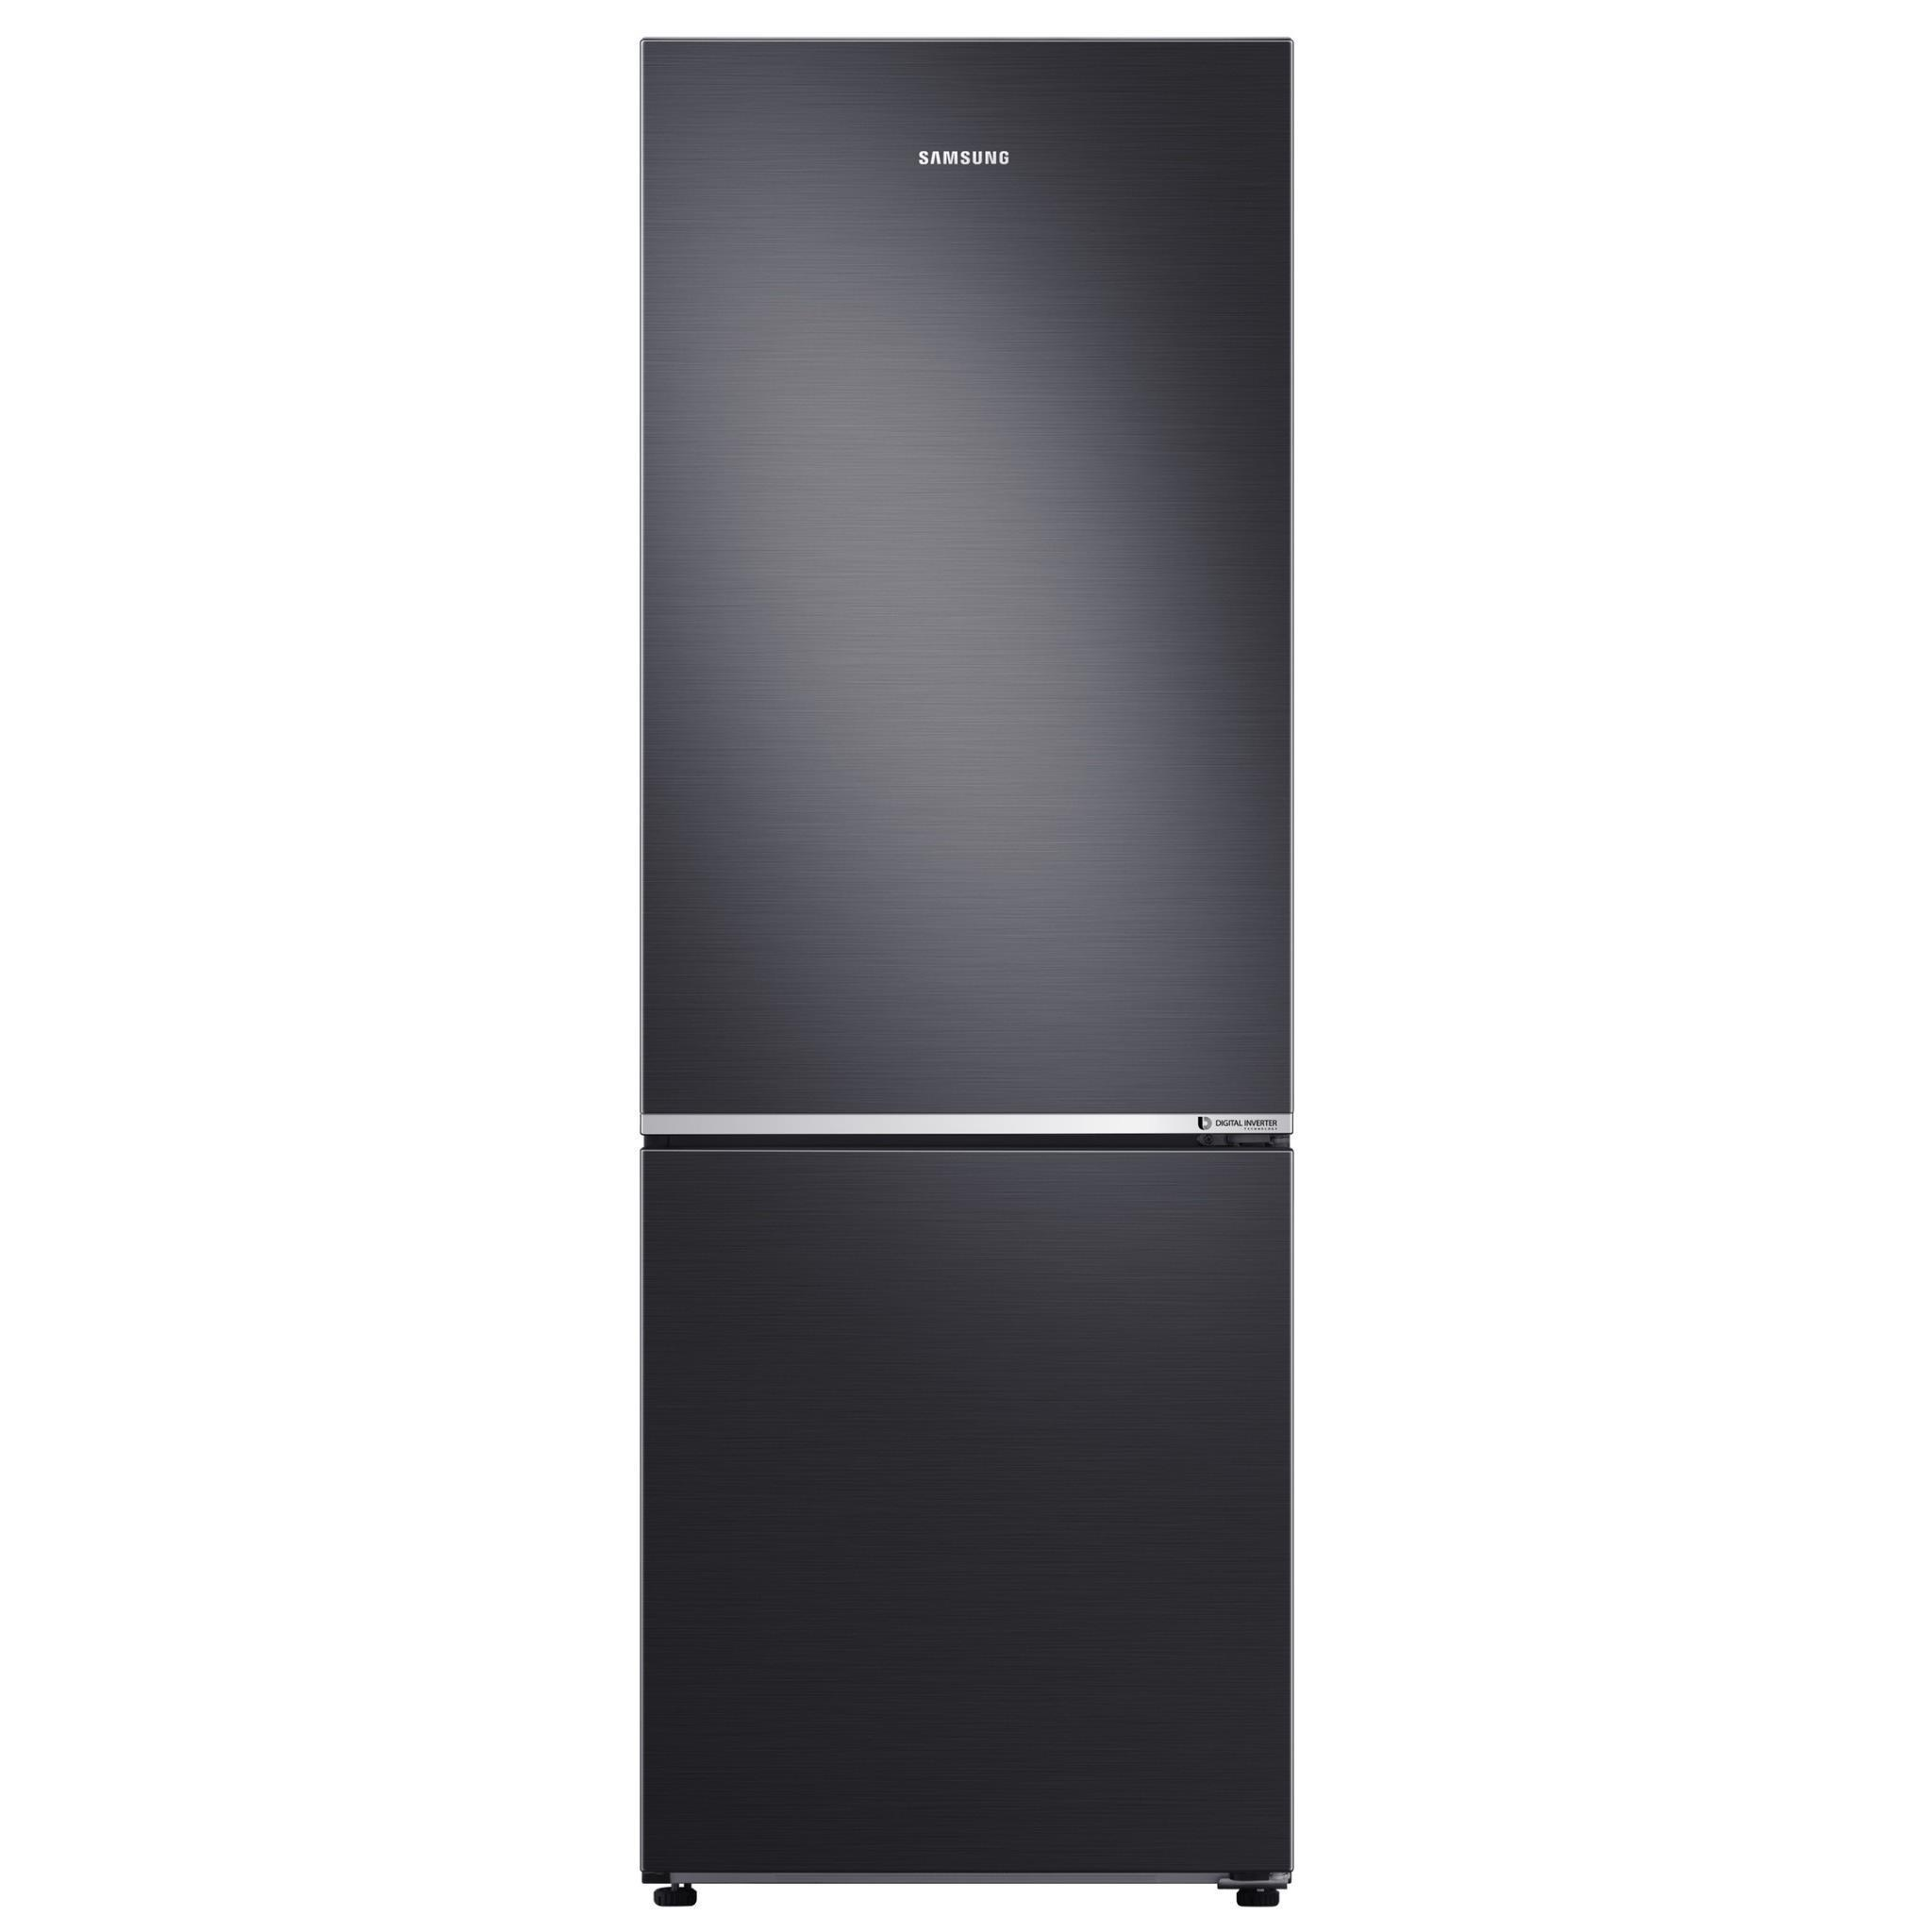 Samsung SRL334NMB 336L Bottom Mount Refrigerator (Black)